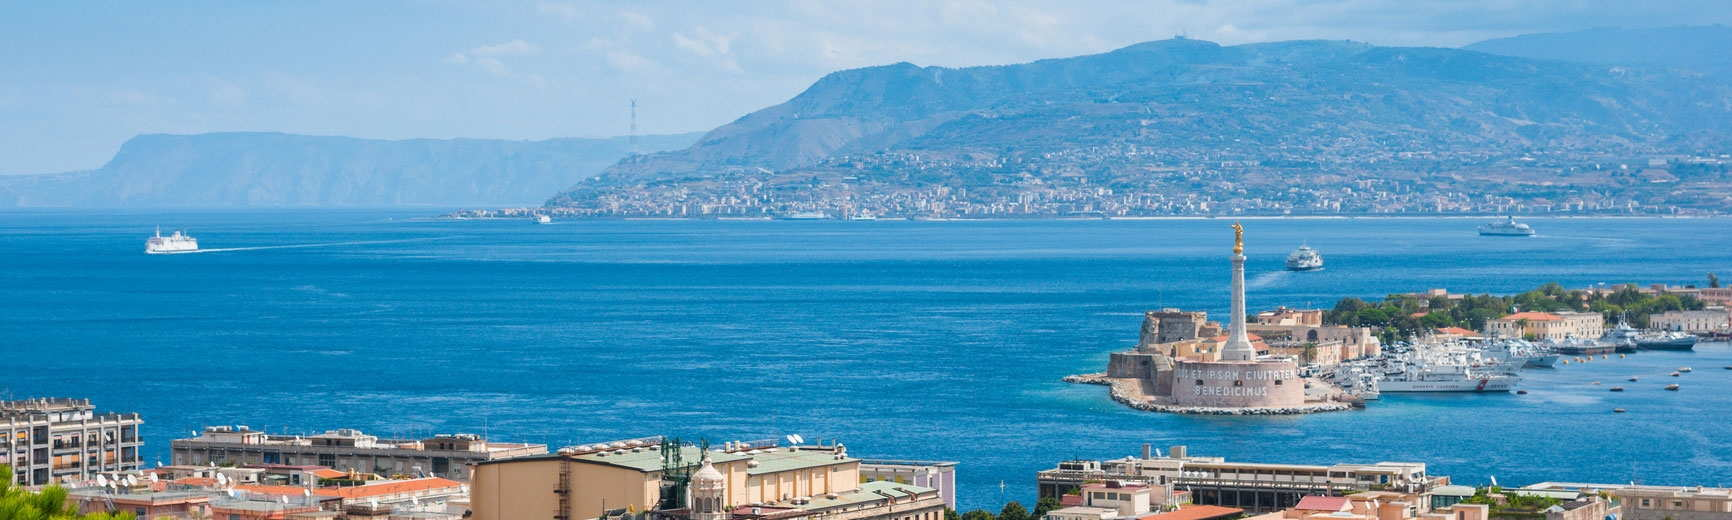 Messina, Sicilia: panoramica dello stretto